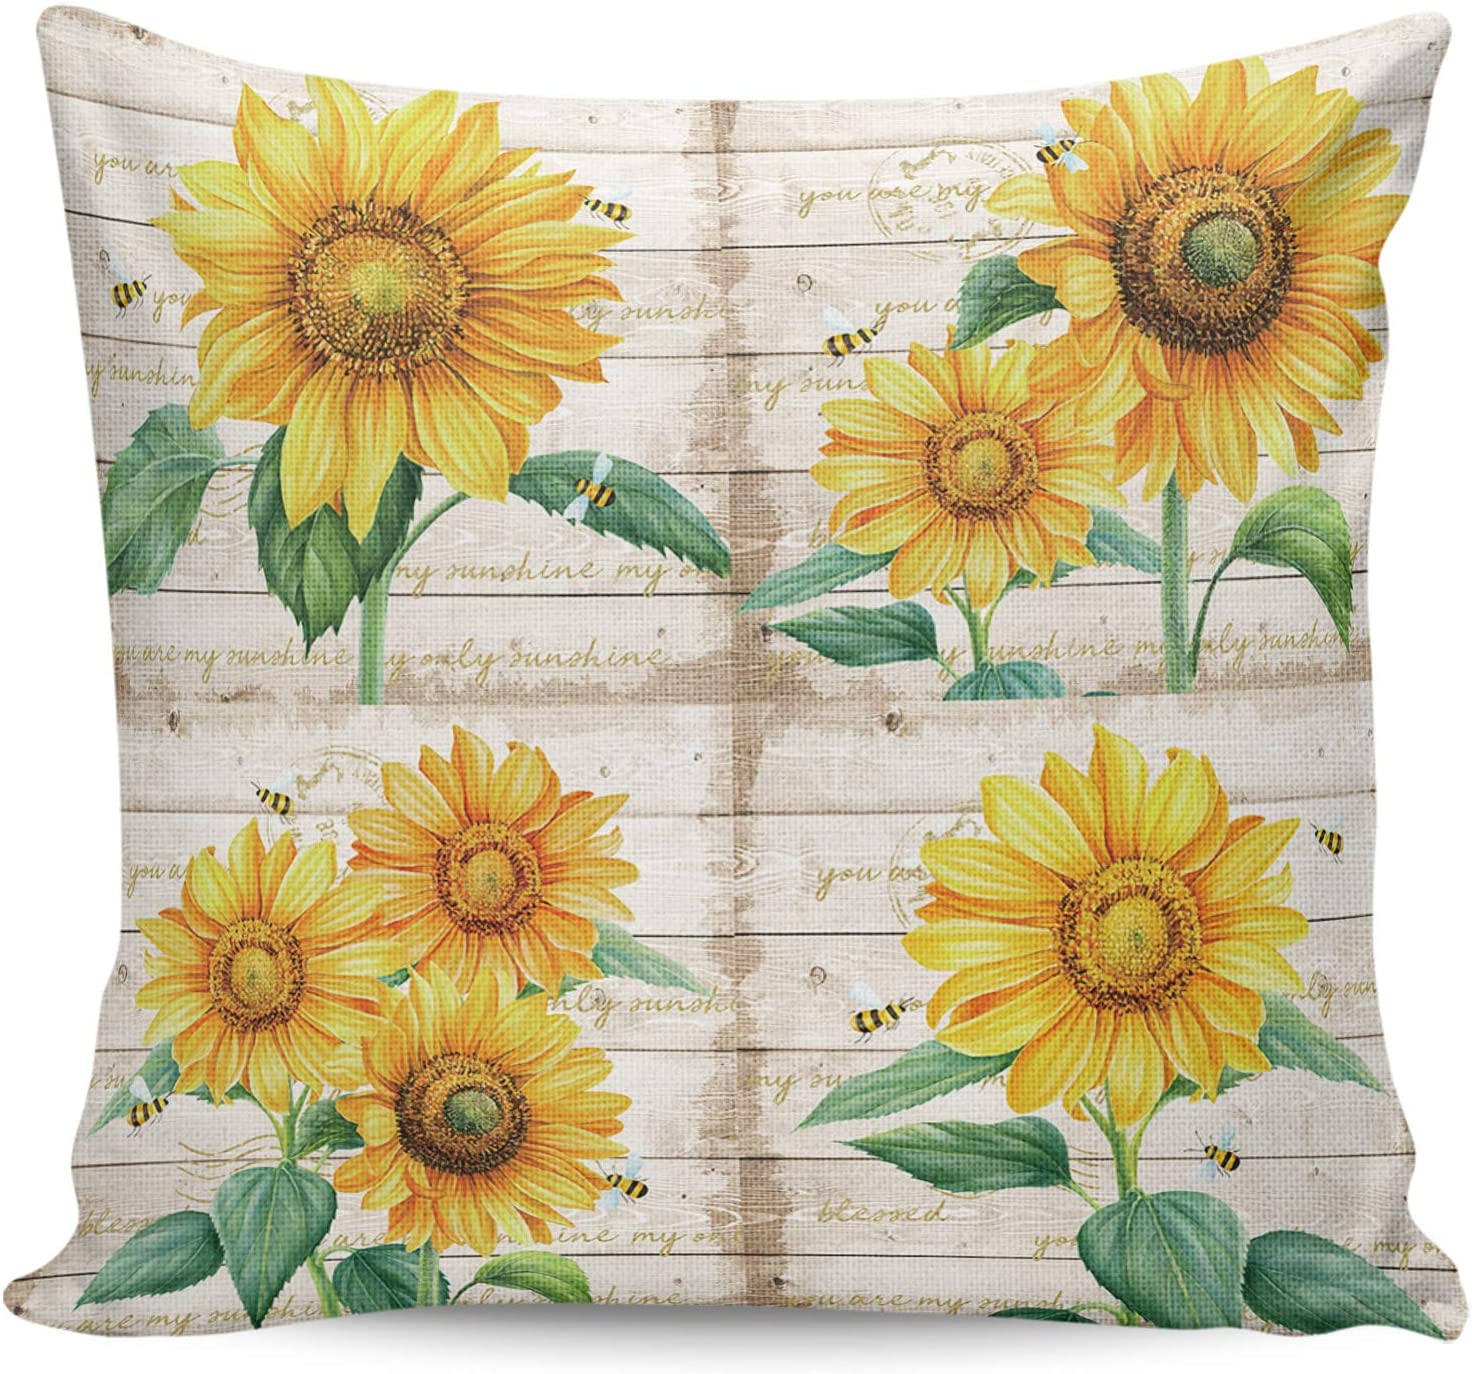 ARTSHOWING Max 77% OFF Farmhouse Decorative Columbus Mall Couch Throw Pillowcase P Square